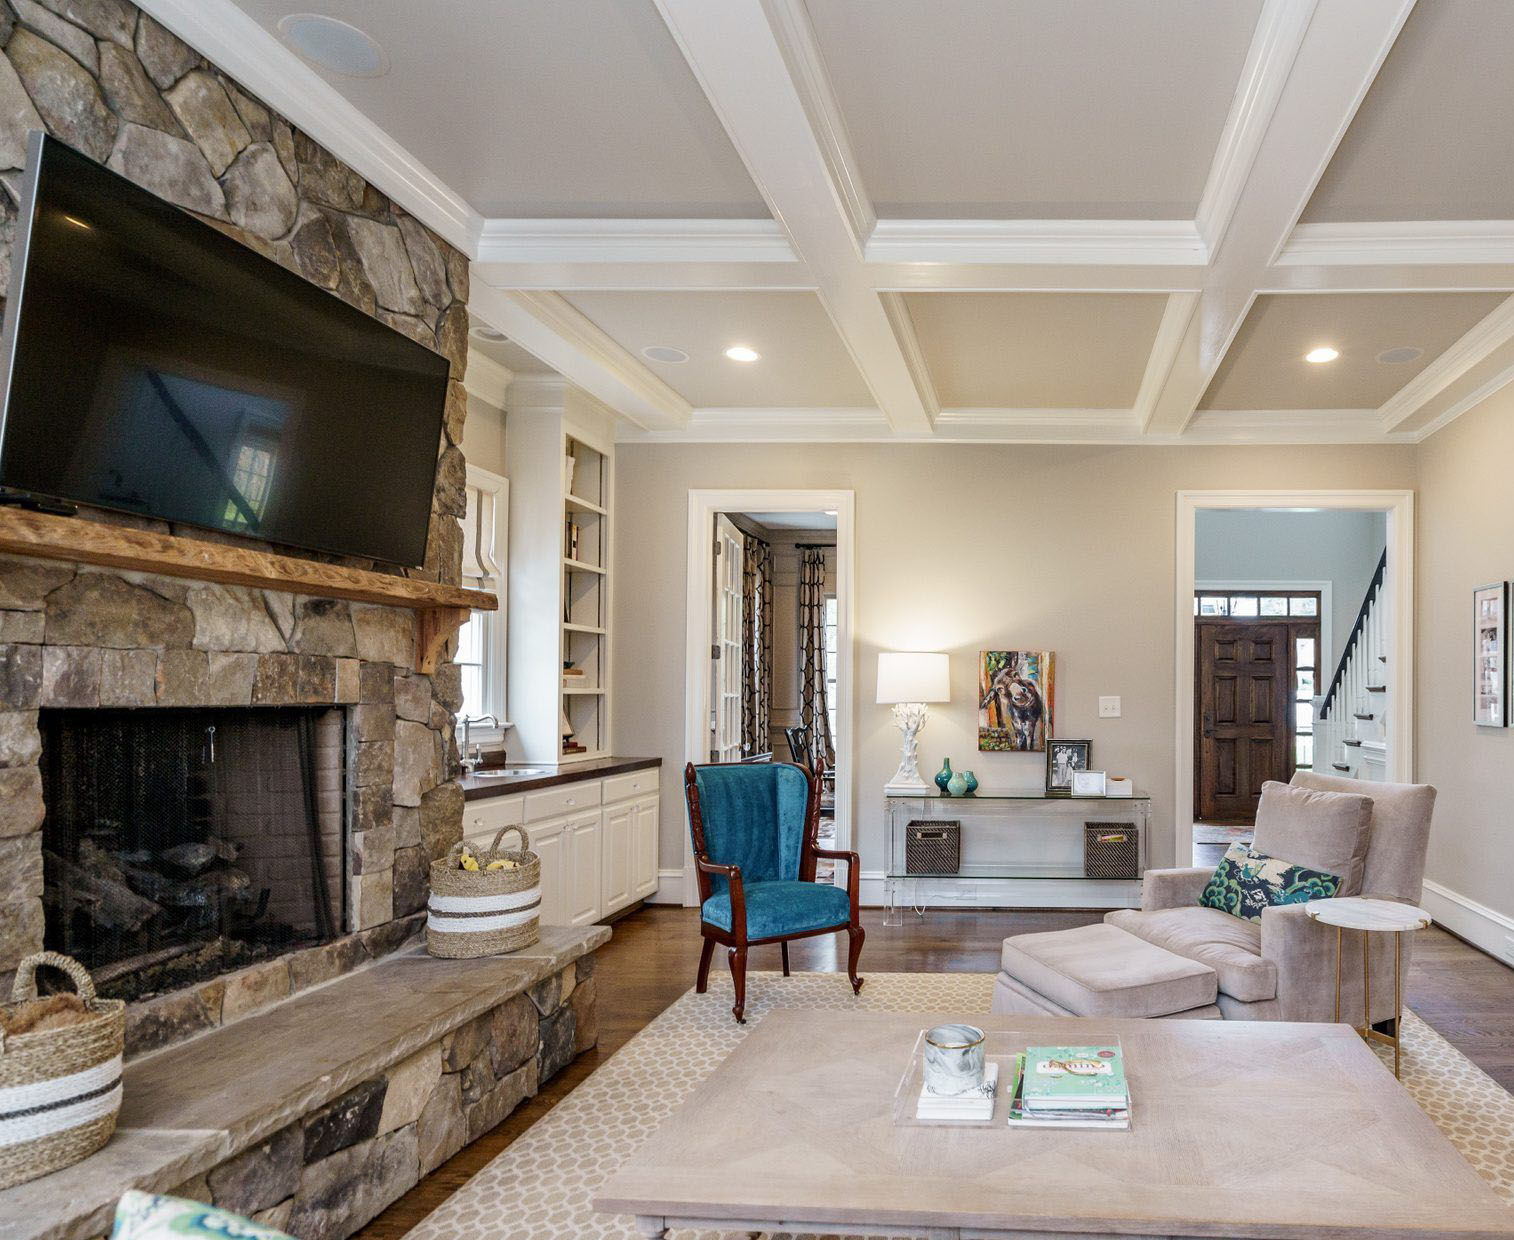 Real stone fireplace design with no grout and super tight stones. Raised hearth with limestone.